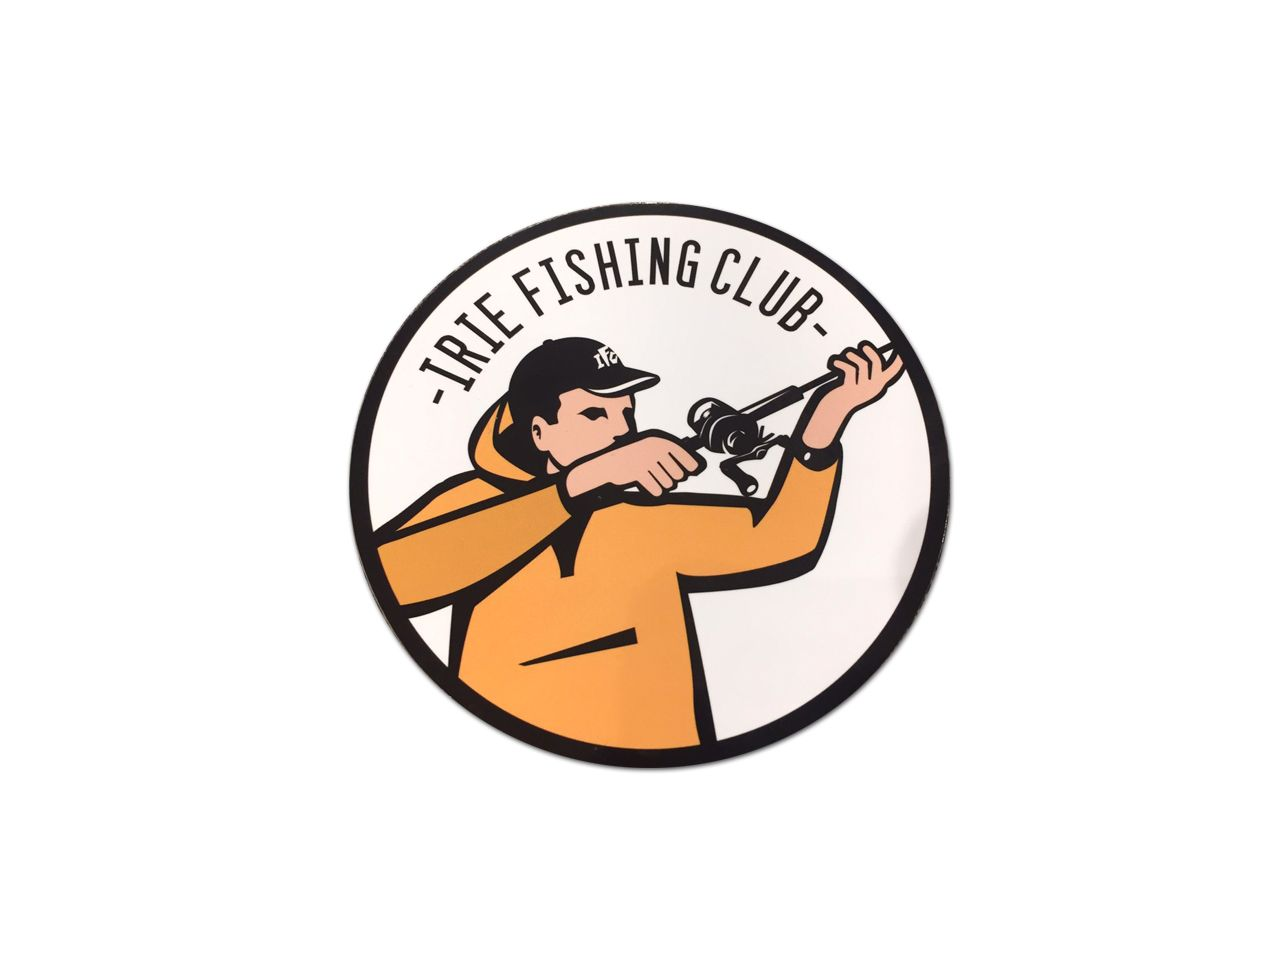 I.F.C WATERPROOF STICKER【SNIPERBOY】 -IRIE FISHING CLUB-